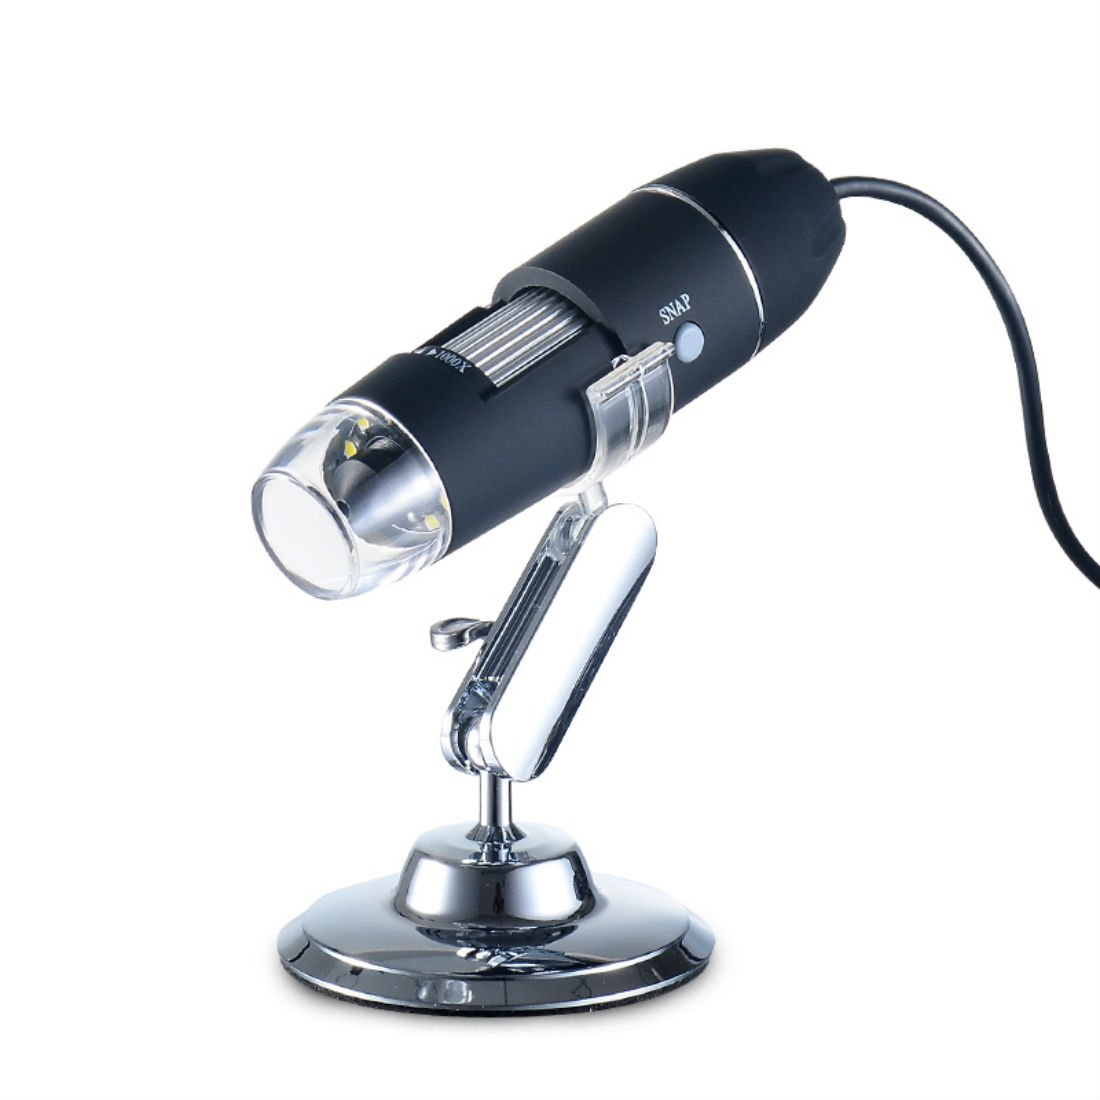 Chaoiwah USB Digital Microscope with 8 pcs leds Flexible Arm Observation Stand professional microscope for xp win7 Win8 win10 (480P, 1000x Magnification)